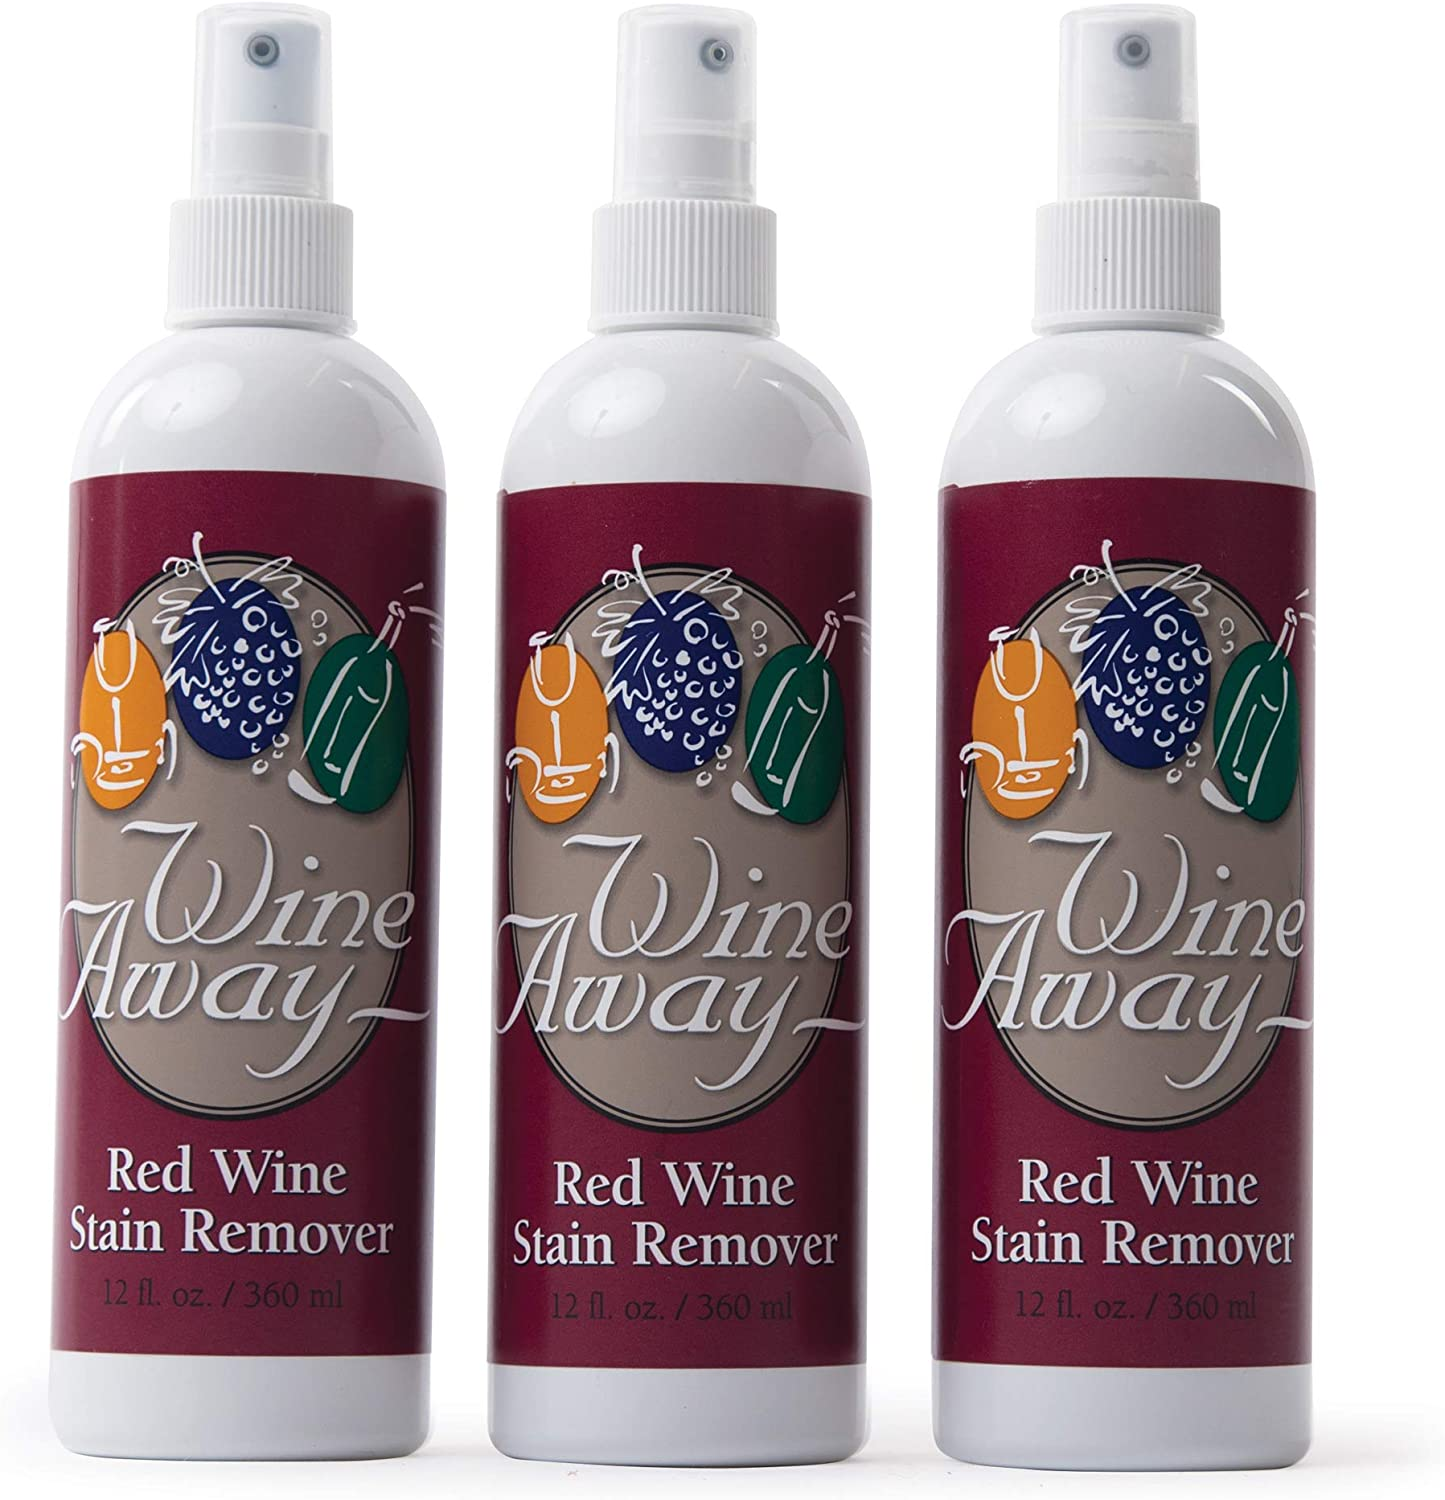 Wine Away Red Wine Stain Remover Perfect Fabric Upholstery And Carpet Cleaner Spray Solution Removes Wine Spots Wine Out Zero Odor Spray And Wash Laundry To